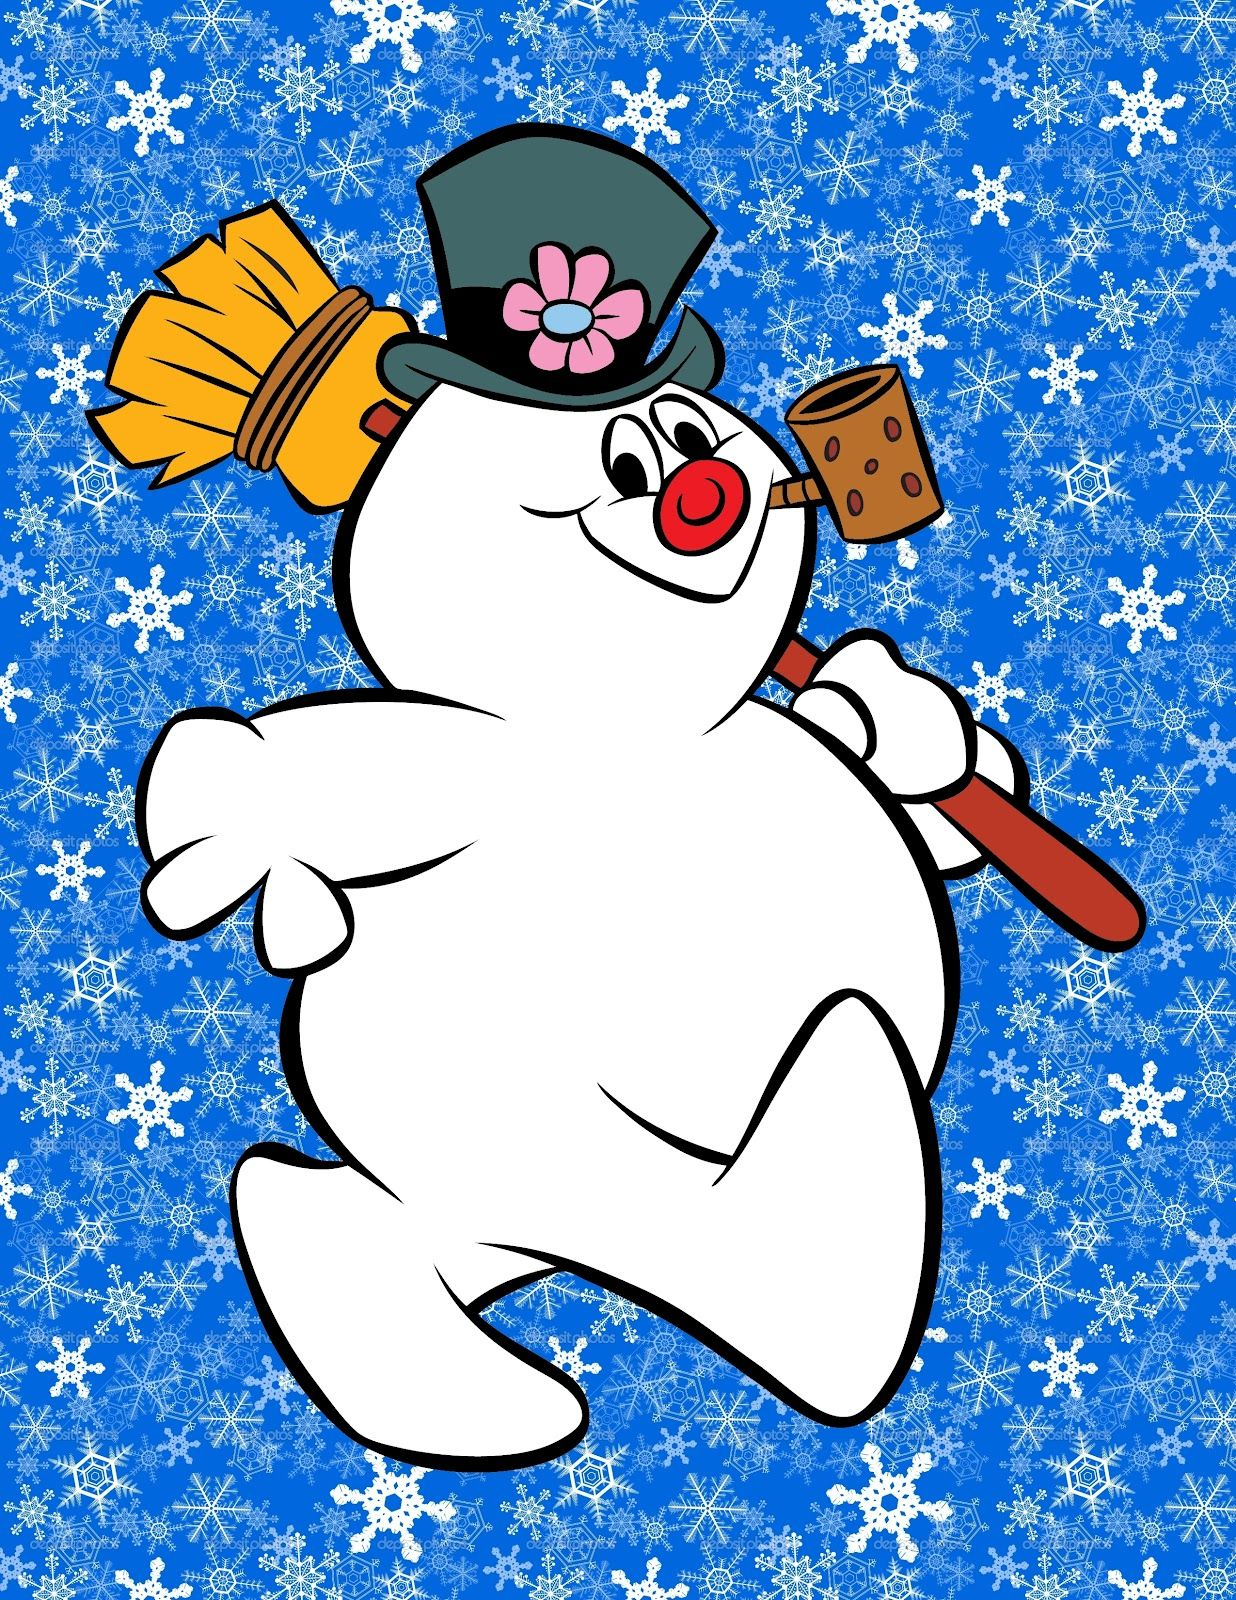 frosty the snowman saying happy birthday ; 0da71c36256d0c8f96747bba7e3f9184